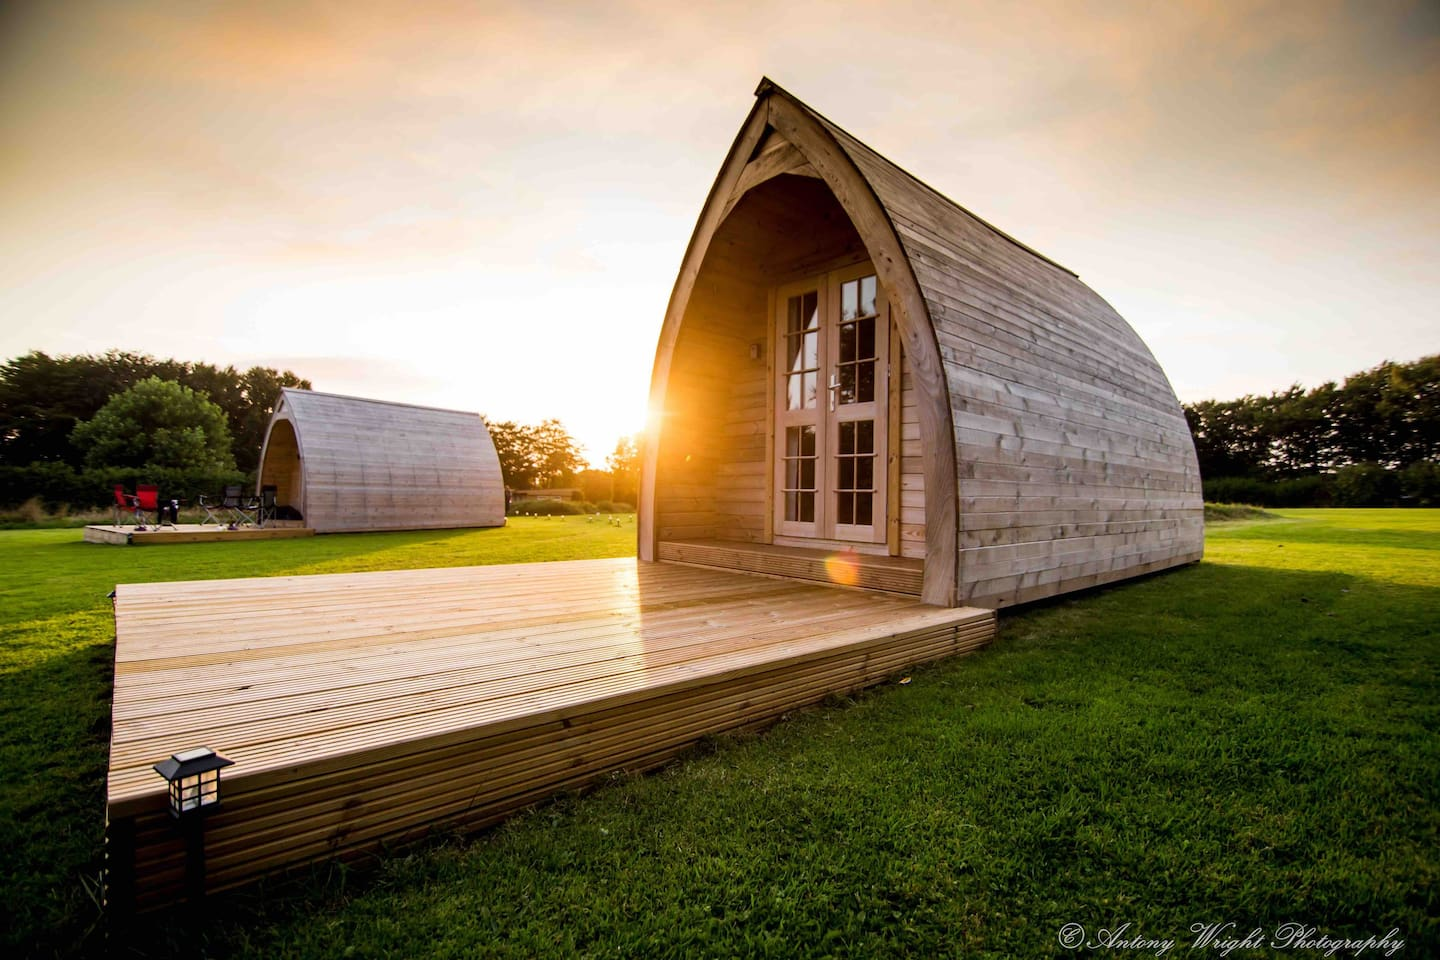 Sunset - Pickwick Glamping cabin/pod